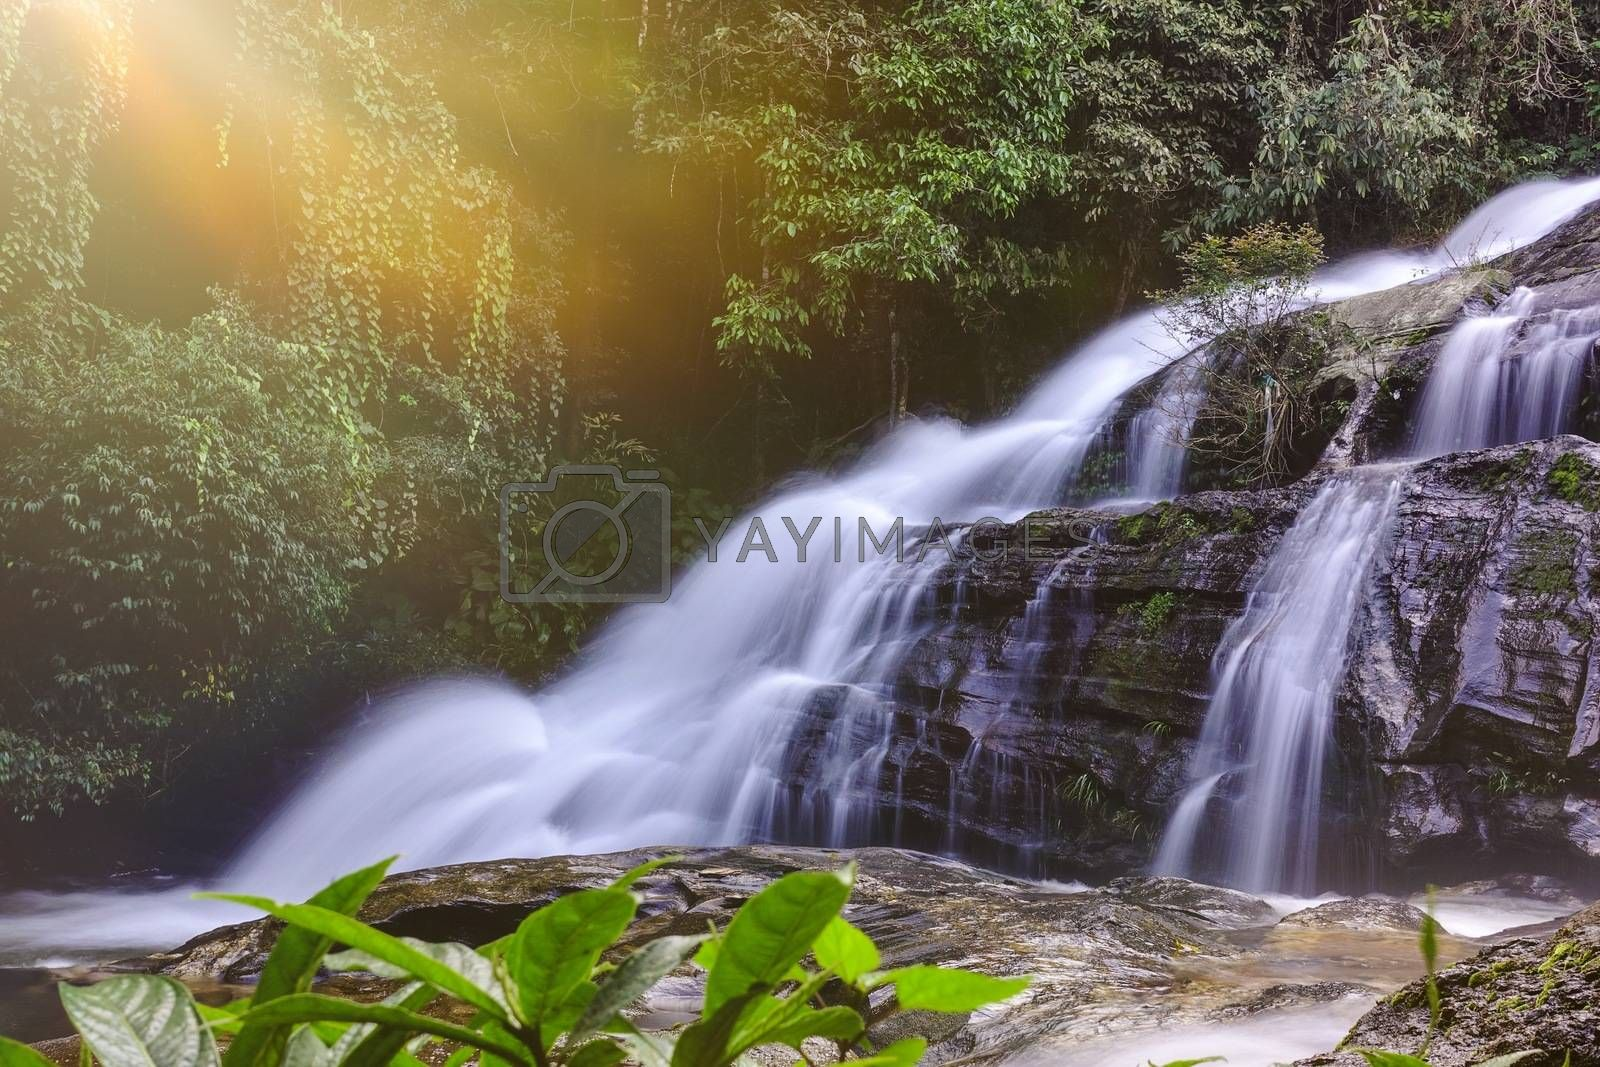 Royalty free image of Beautiful landscape of waterfall with light in Chiangmai, Thailand by nuchylee